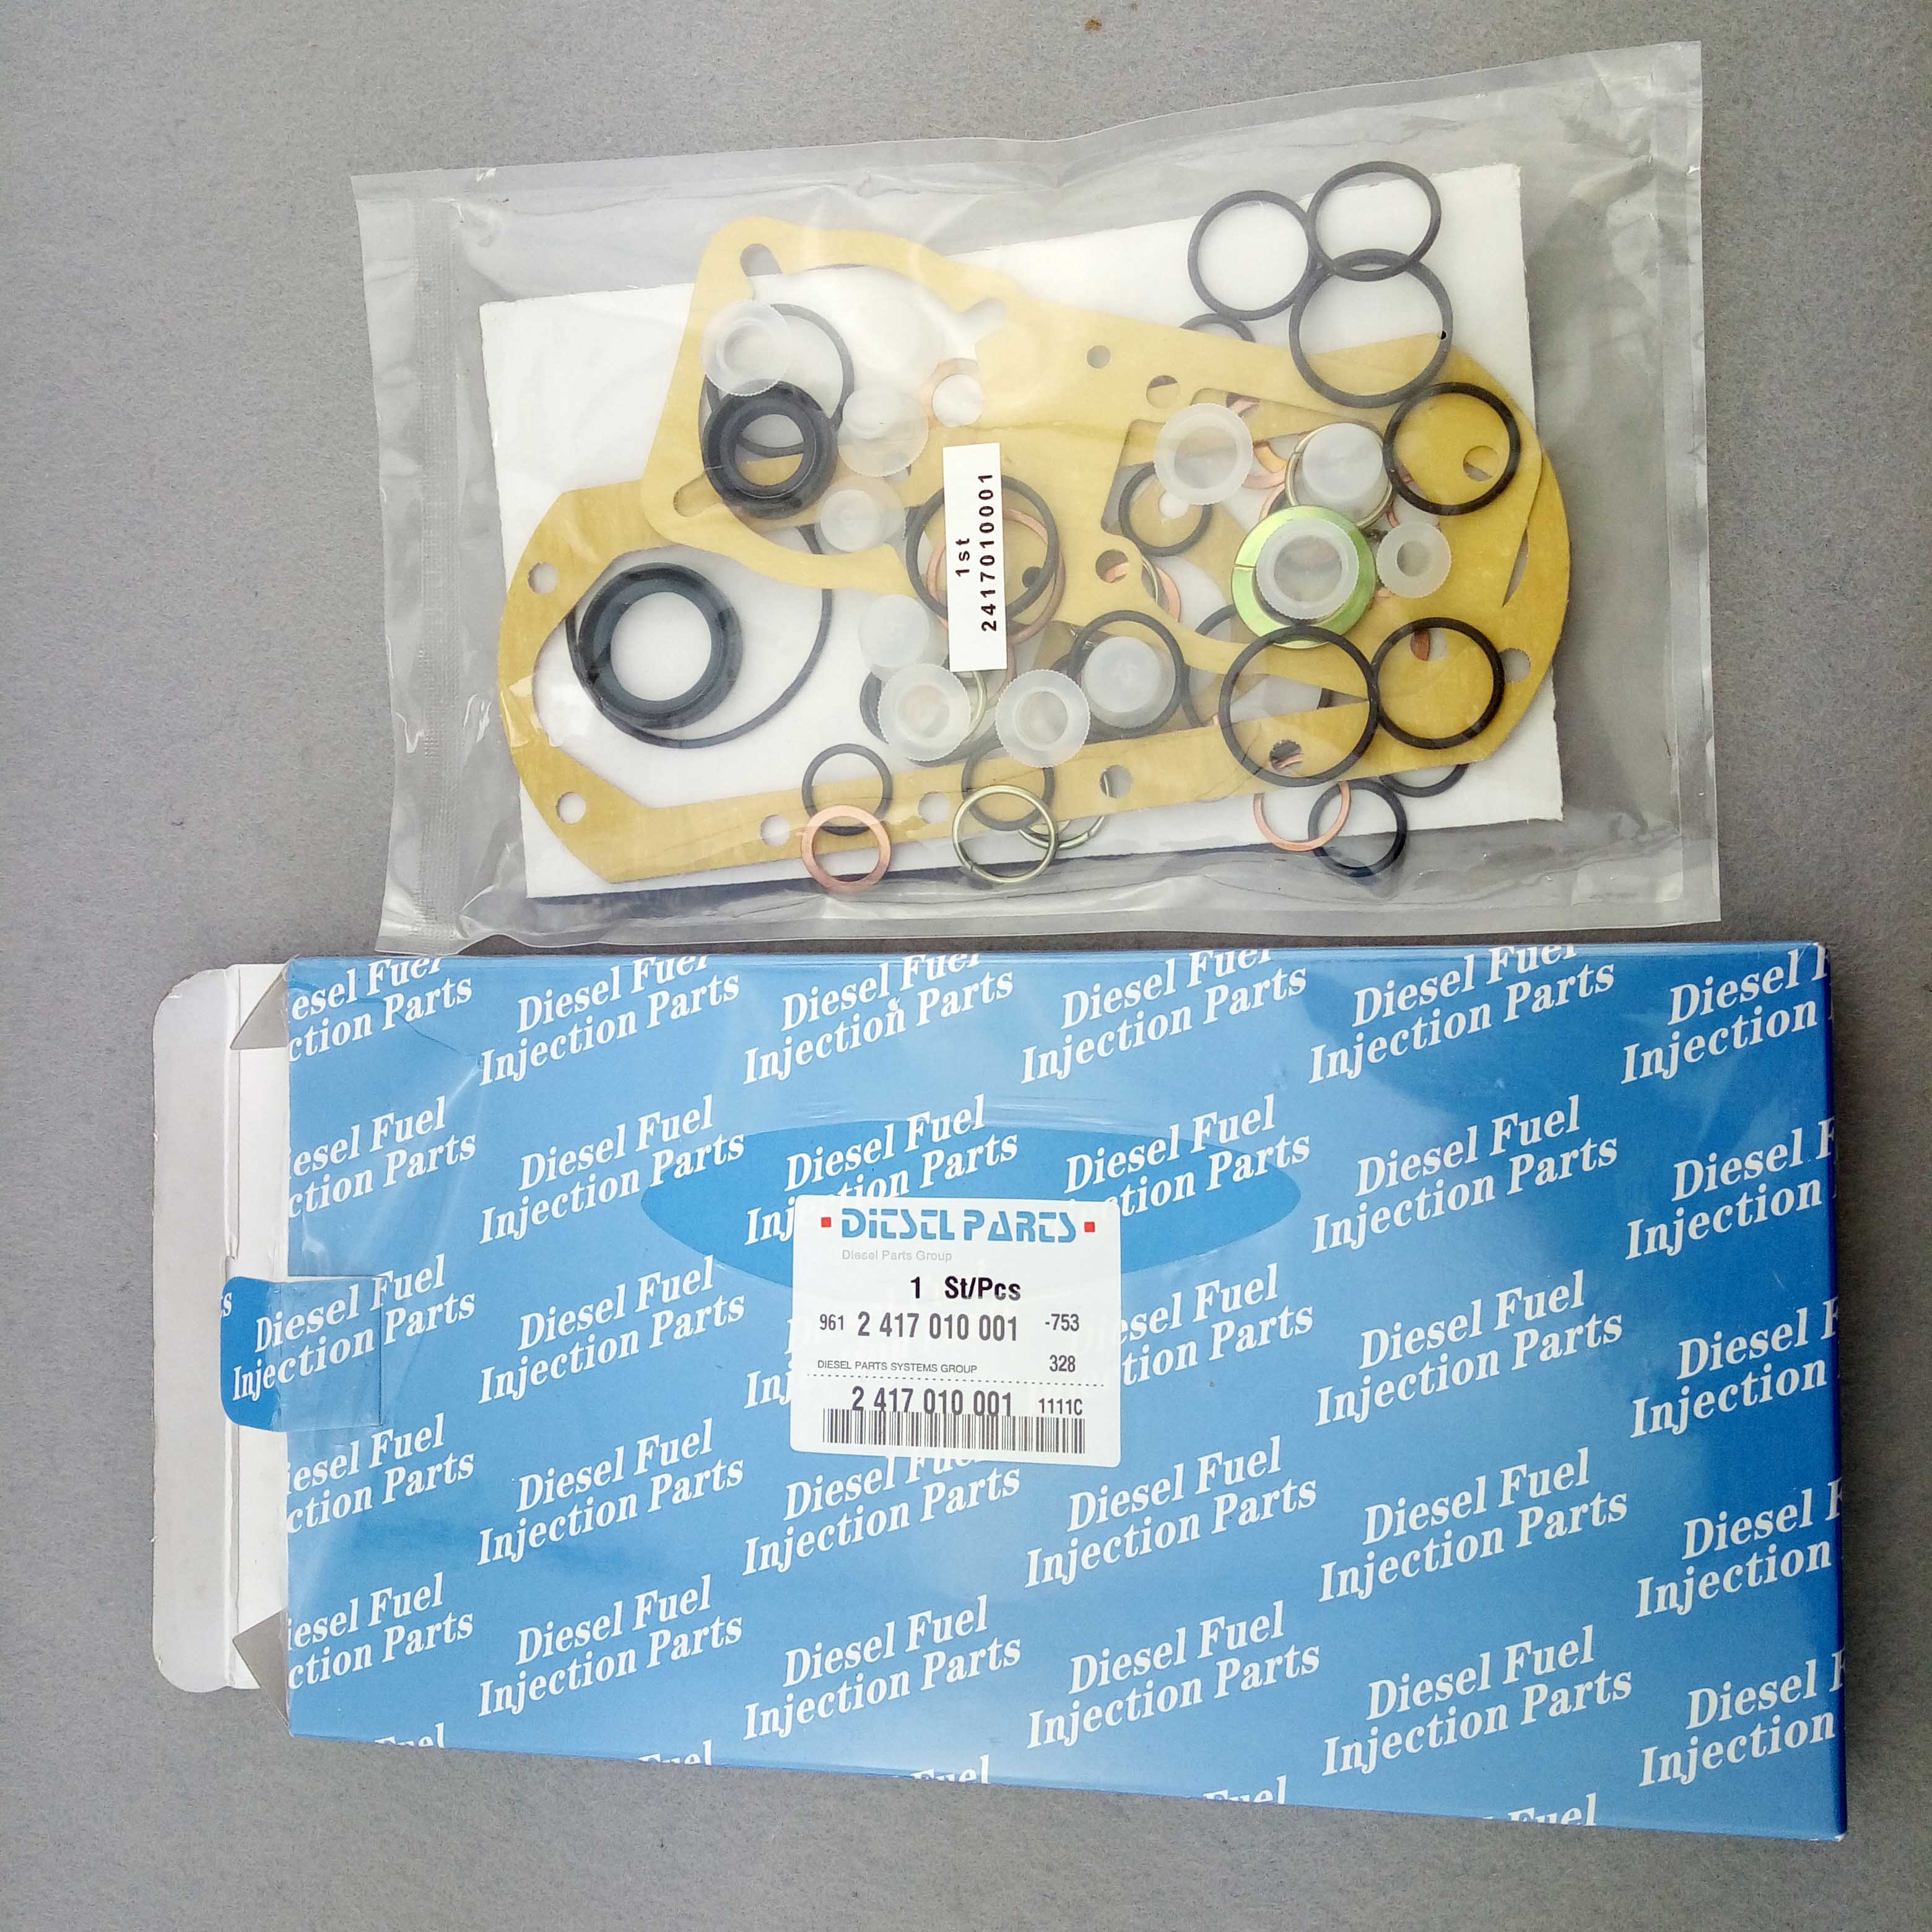 diesel fuel injection parts repart kit oe:2417010001